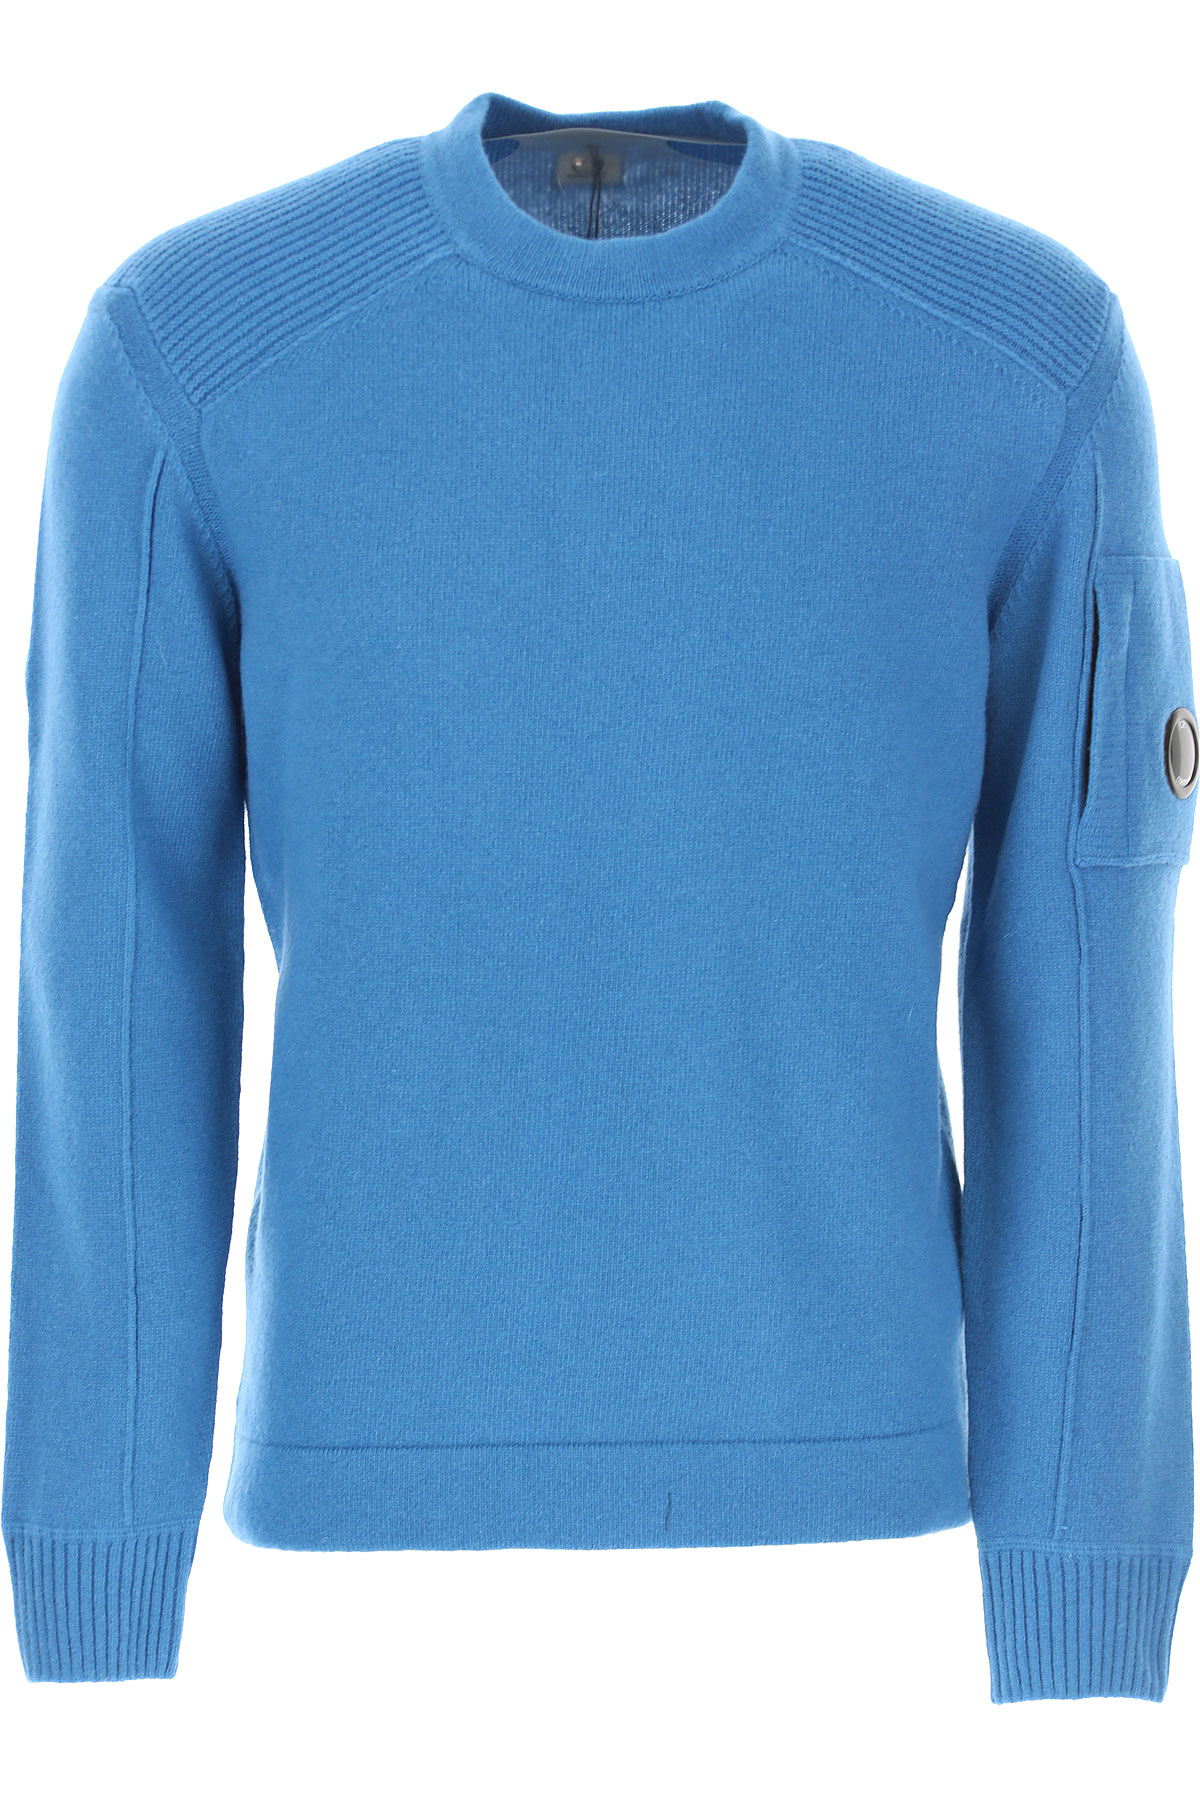 C.P. Company Sweater for Men Jumper On Sale, Peacock Blue, Wool, 2019, L M